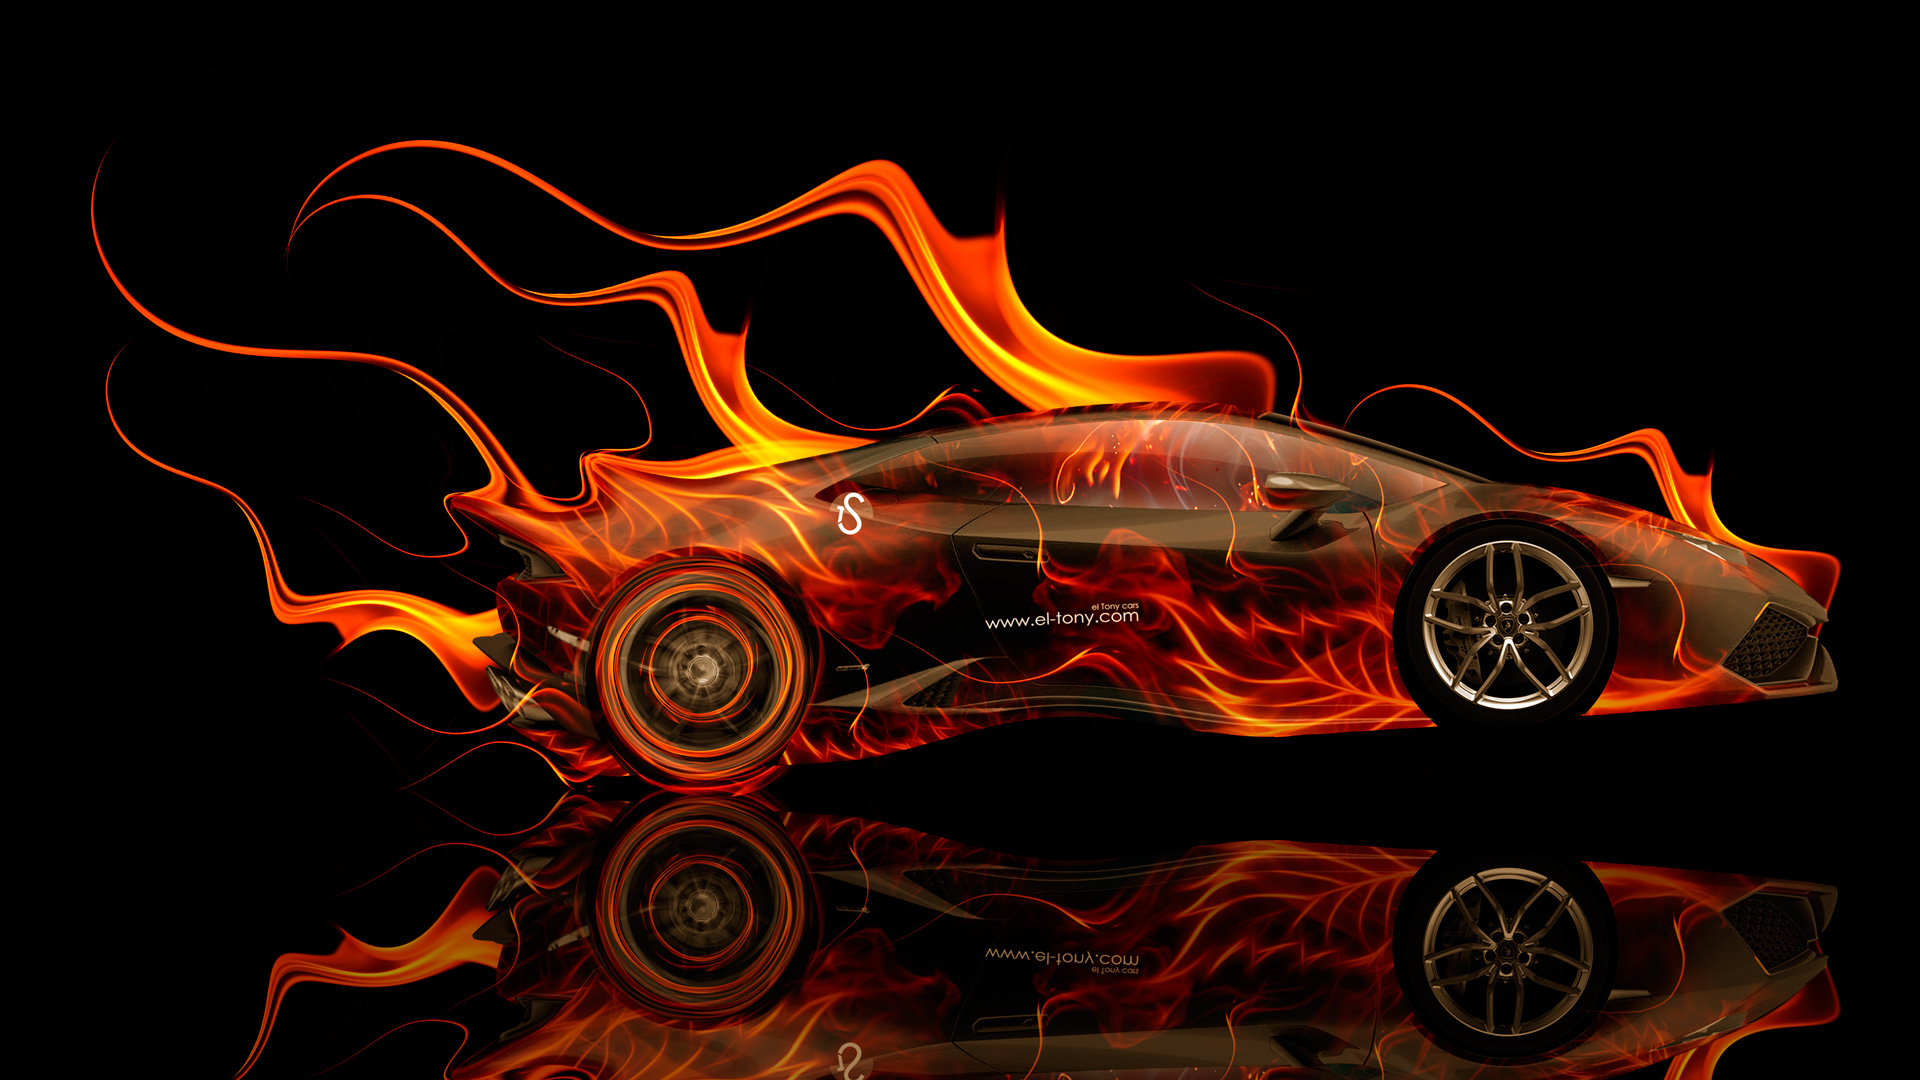 Lamborghini Huracan Side Fire Abstract Car 2014 HD